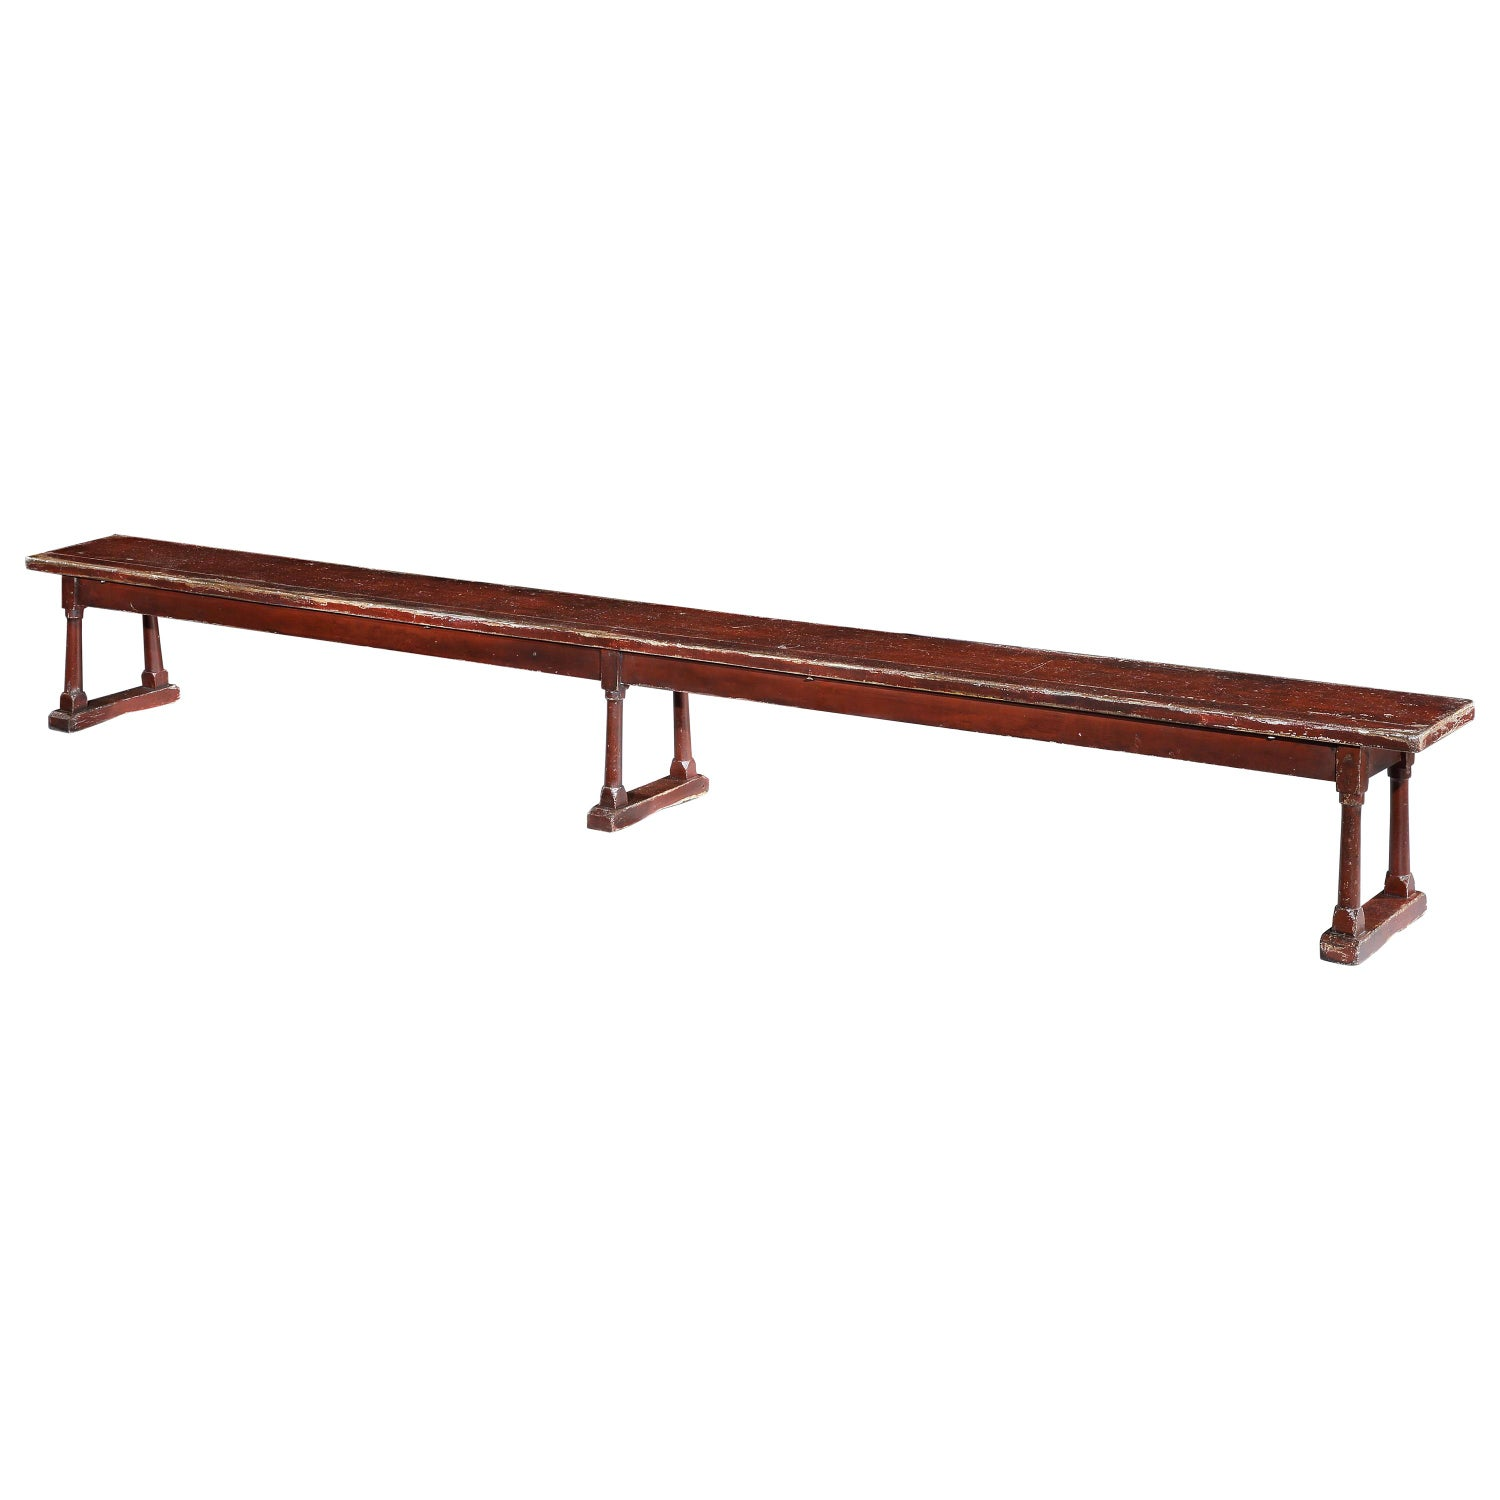 Bench Massive Oxblood Red Painted Pine Country Folk Vernacular